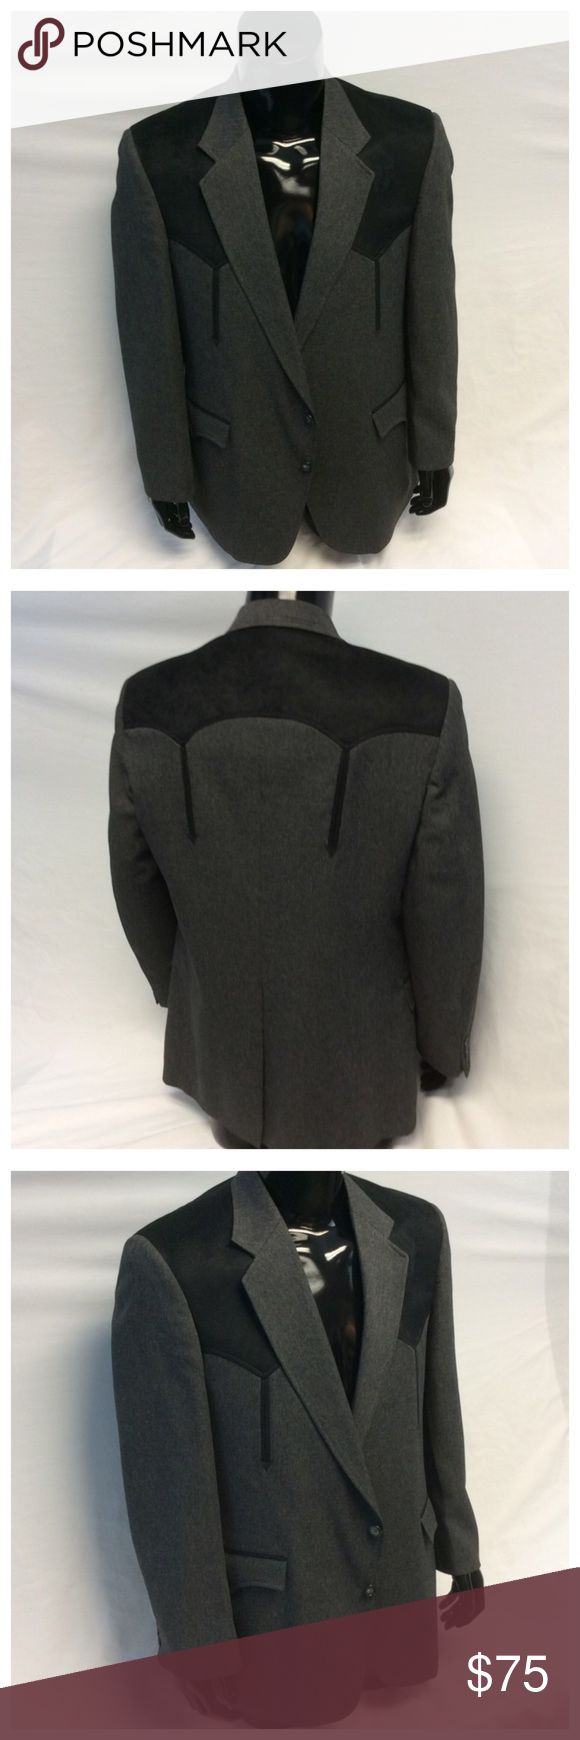 "CIRCLE S MENS BLACK SUIT JACKET CIRCLE S MENS BLACK WESTERN STYLE SUIT JACKET, Size 44R, 100% polyester, lining is 100% acetate, dry clean. Approximate measurements are 18 1/2"" shoulder seam to shoulder seam, 23"" arm pit to arm pit, 31"" shoulder to hem, 24 1/2"" sleeve from shoulder to end of sleeve, 10 1/2"" slit. M012 Circle S Suits & Blazers"